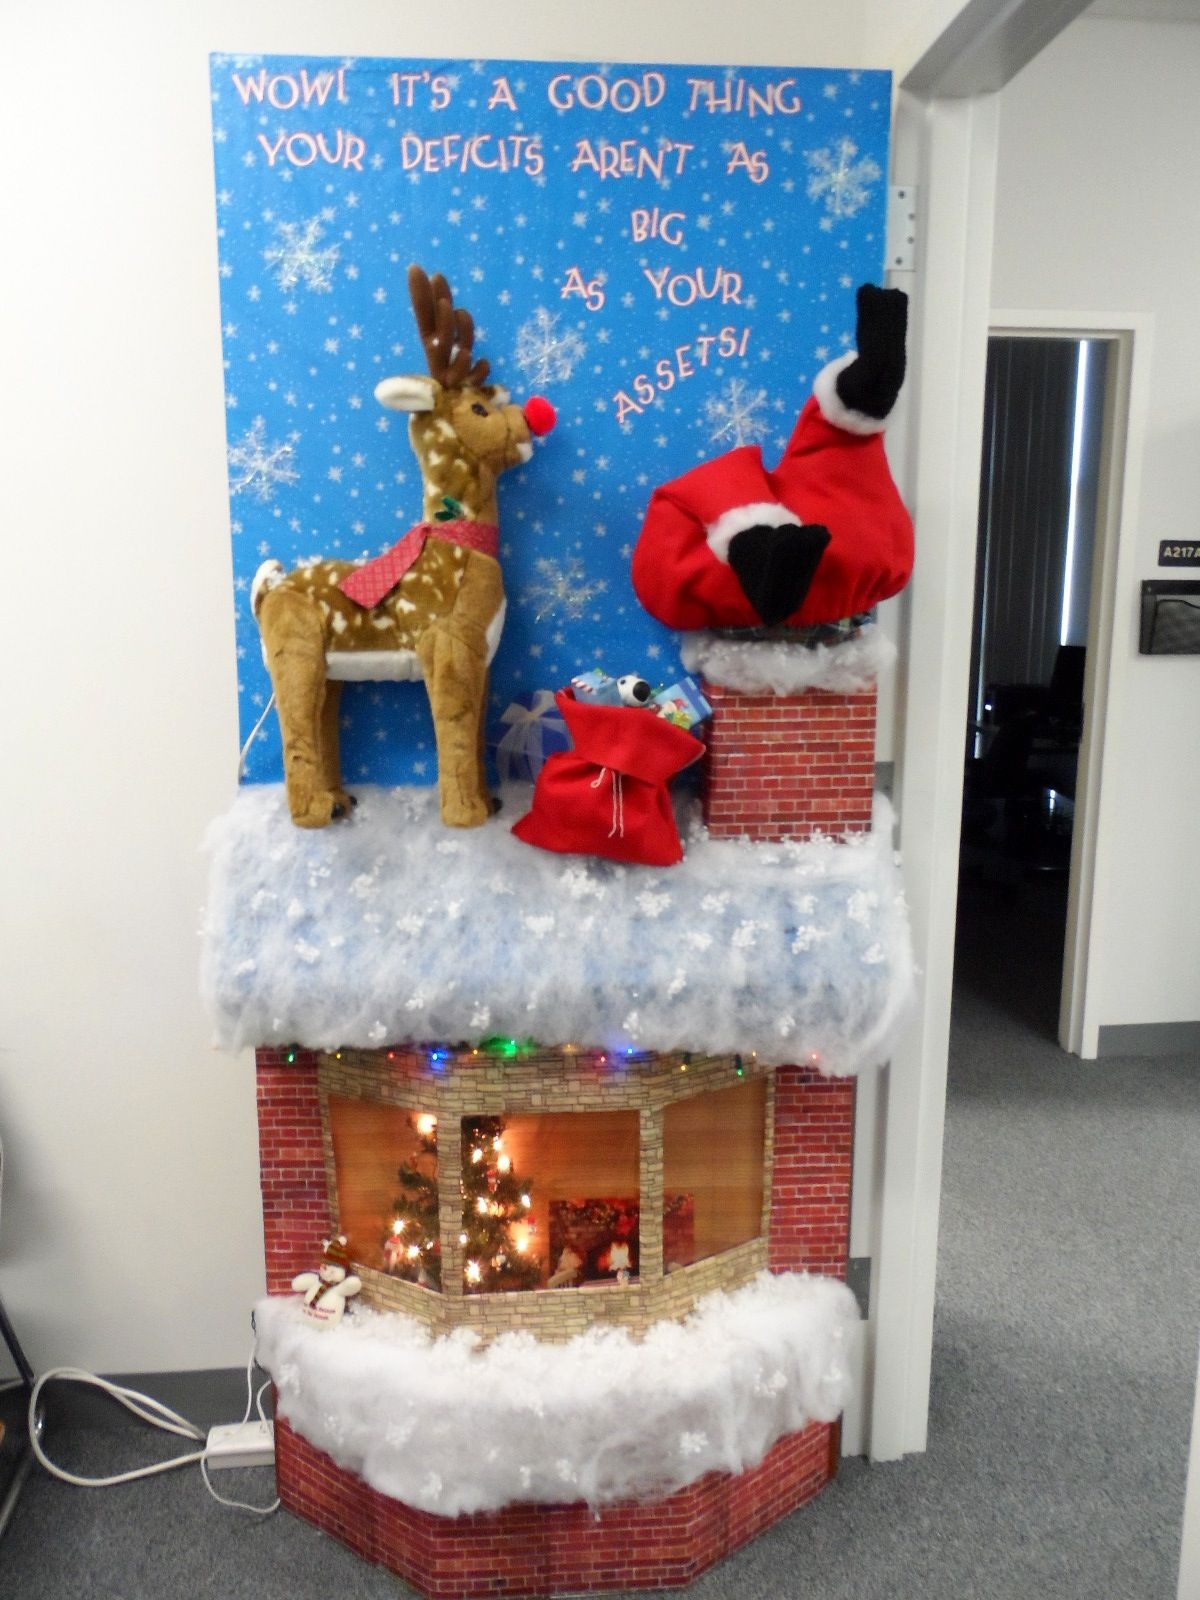 Christmas Decorating Ideas For Office Door : Door decorating contest for christmas office